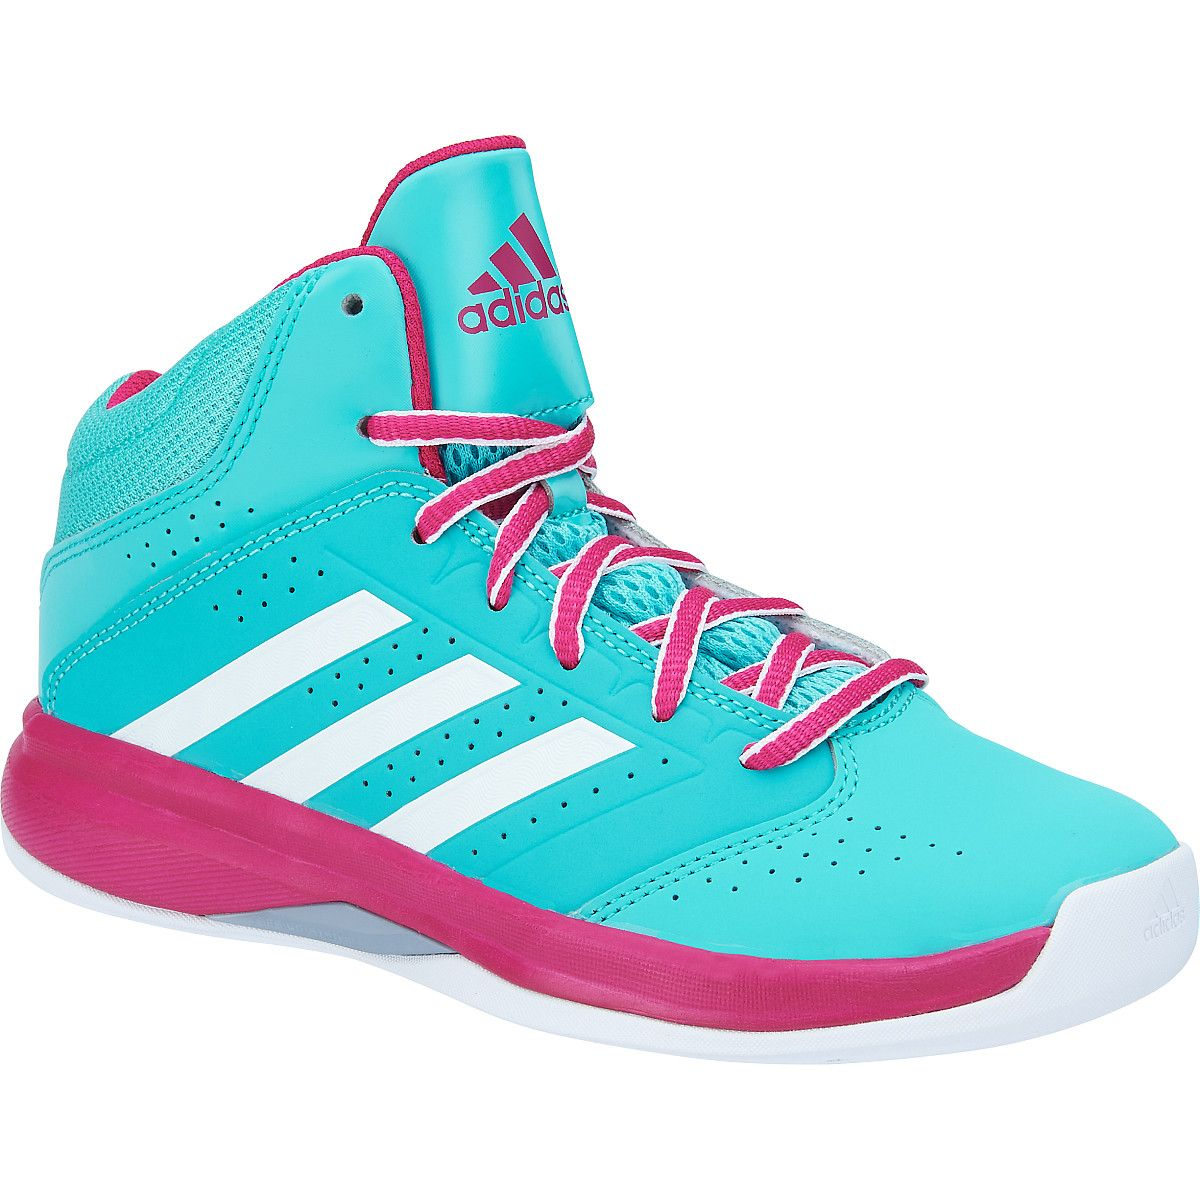 f3e88bcb adidas Girls' Isolation 2 K Mid Basketball Shoes - SportsAuthority ...